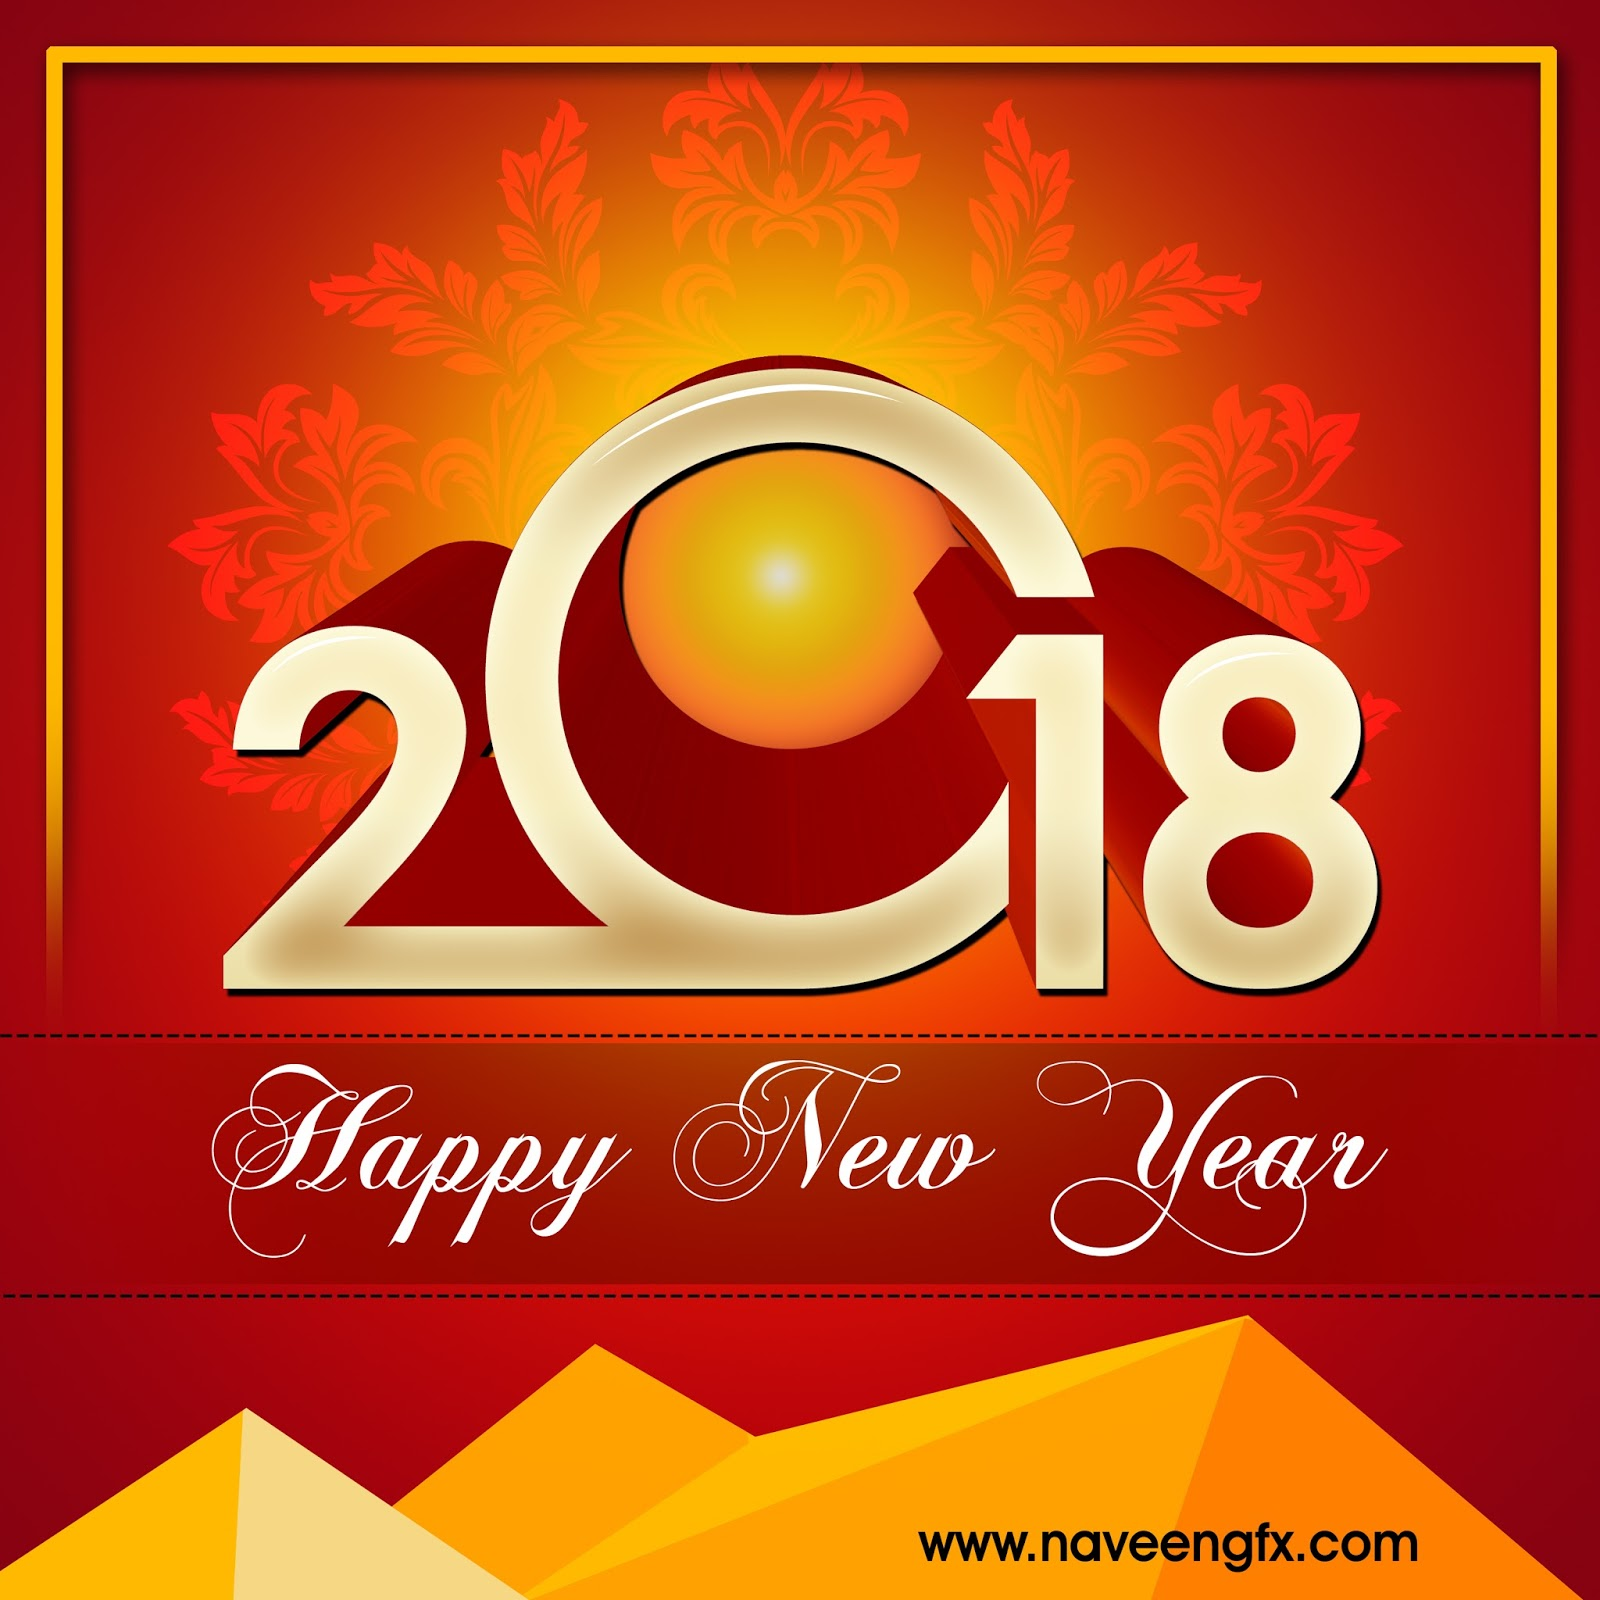 2018 happy new year psd design template free